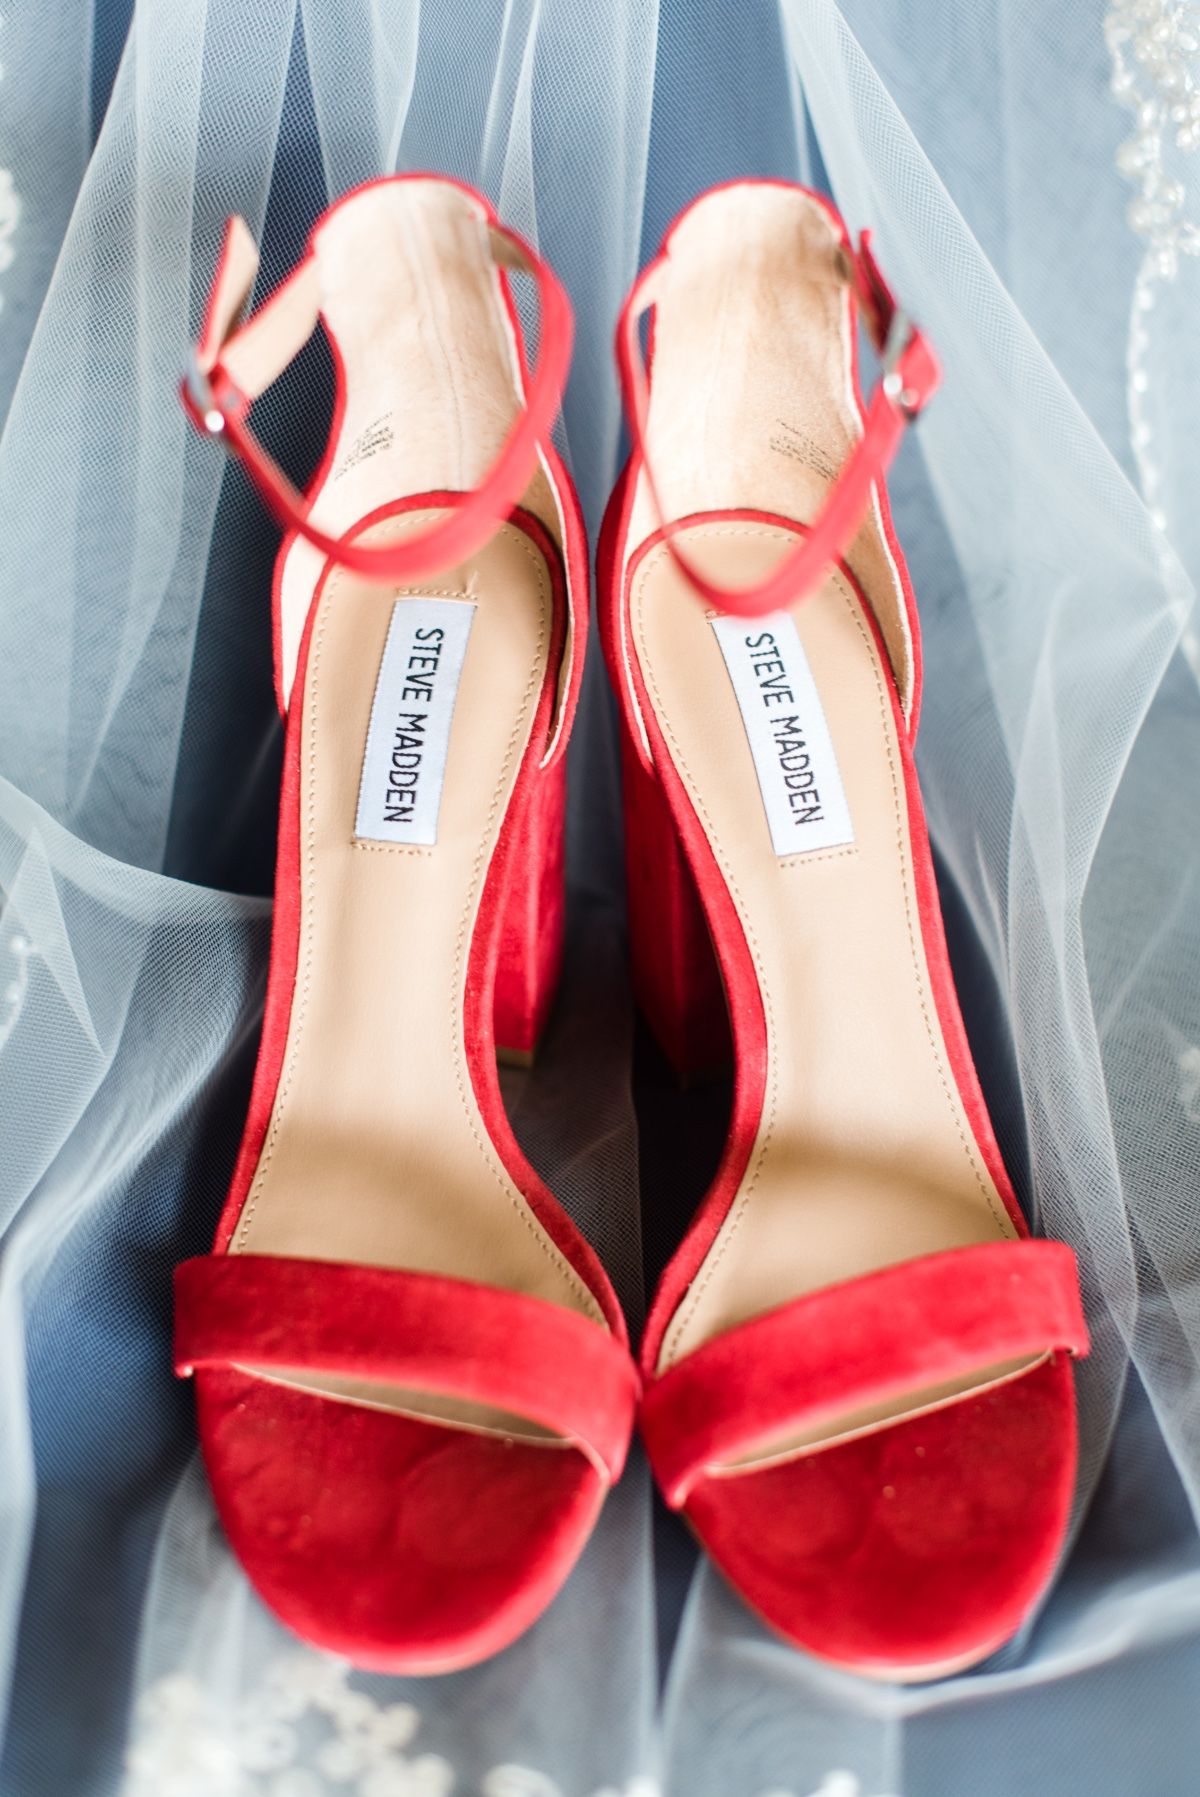 Red wedding heels